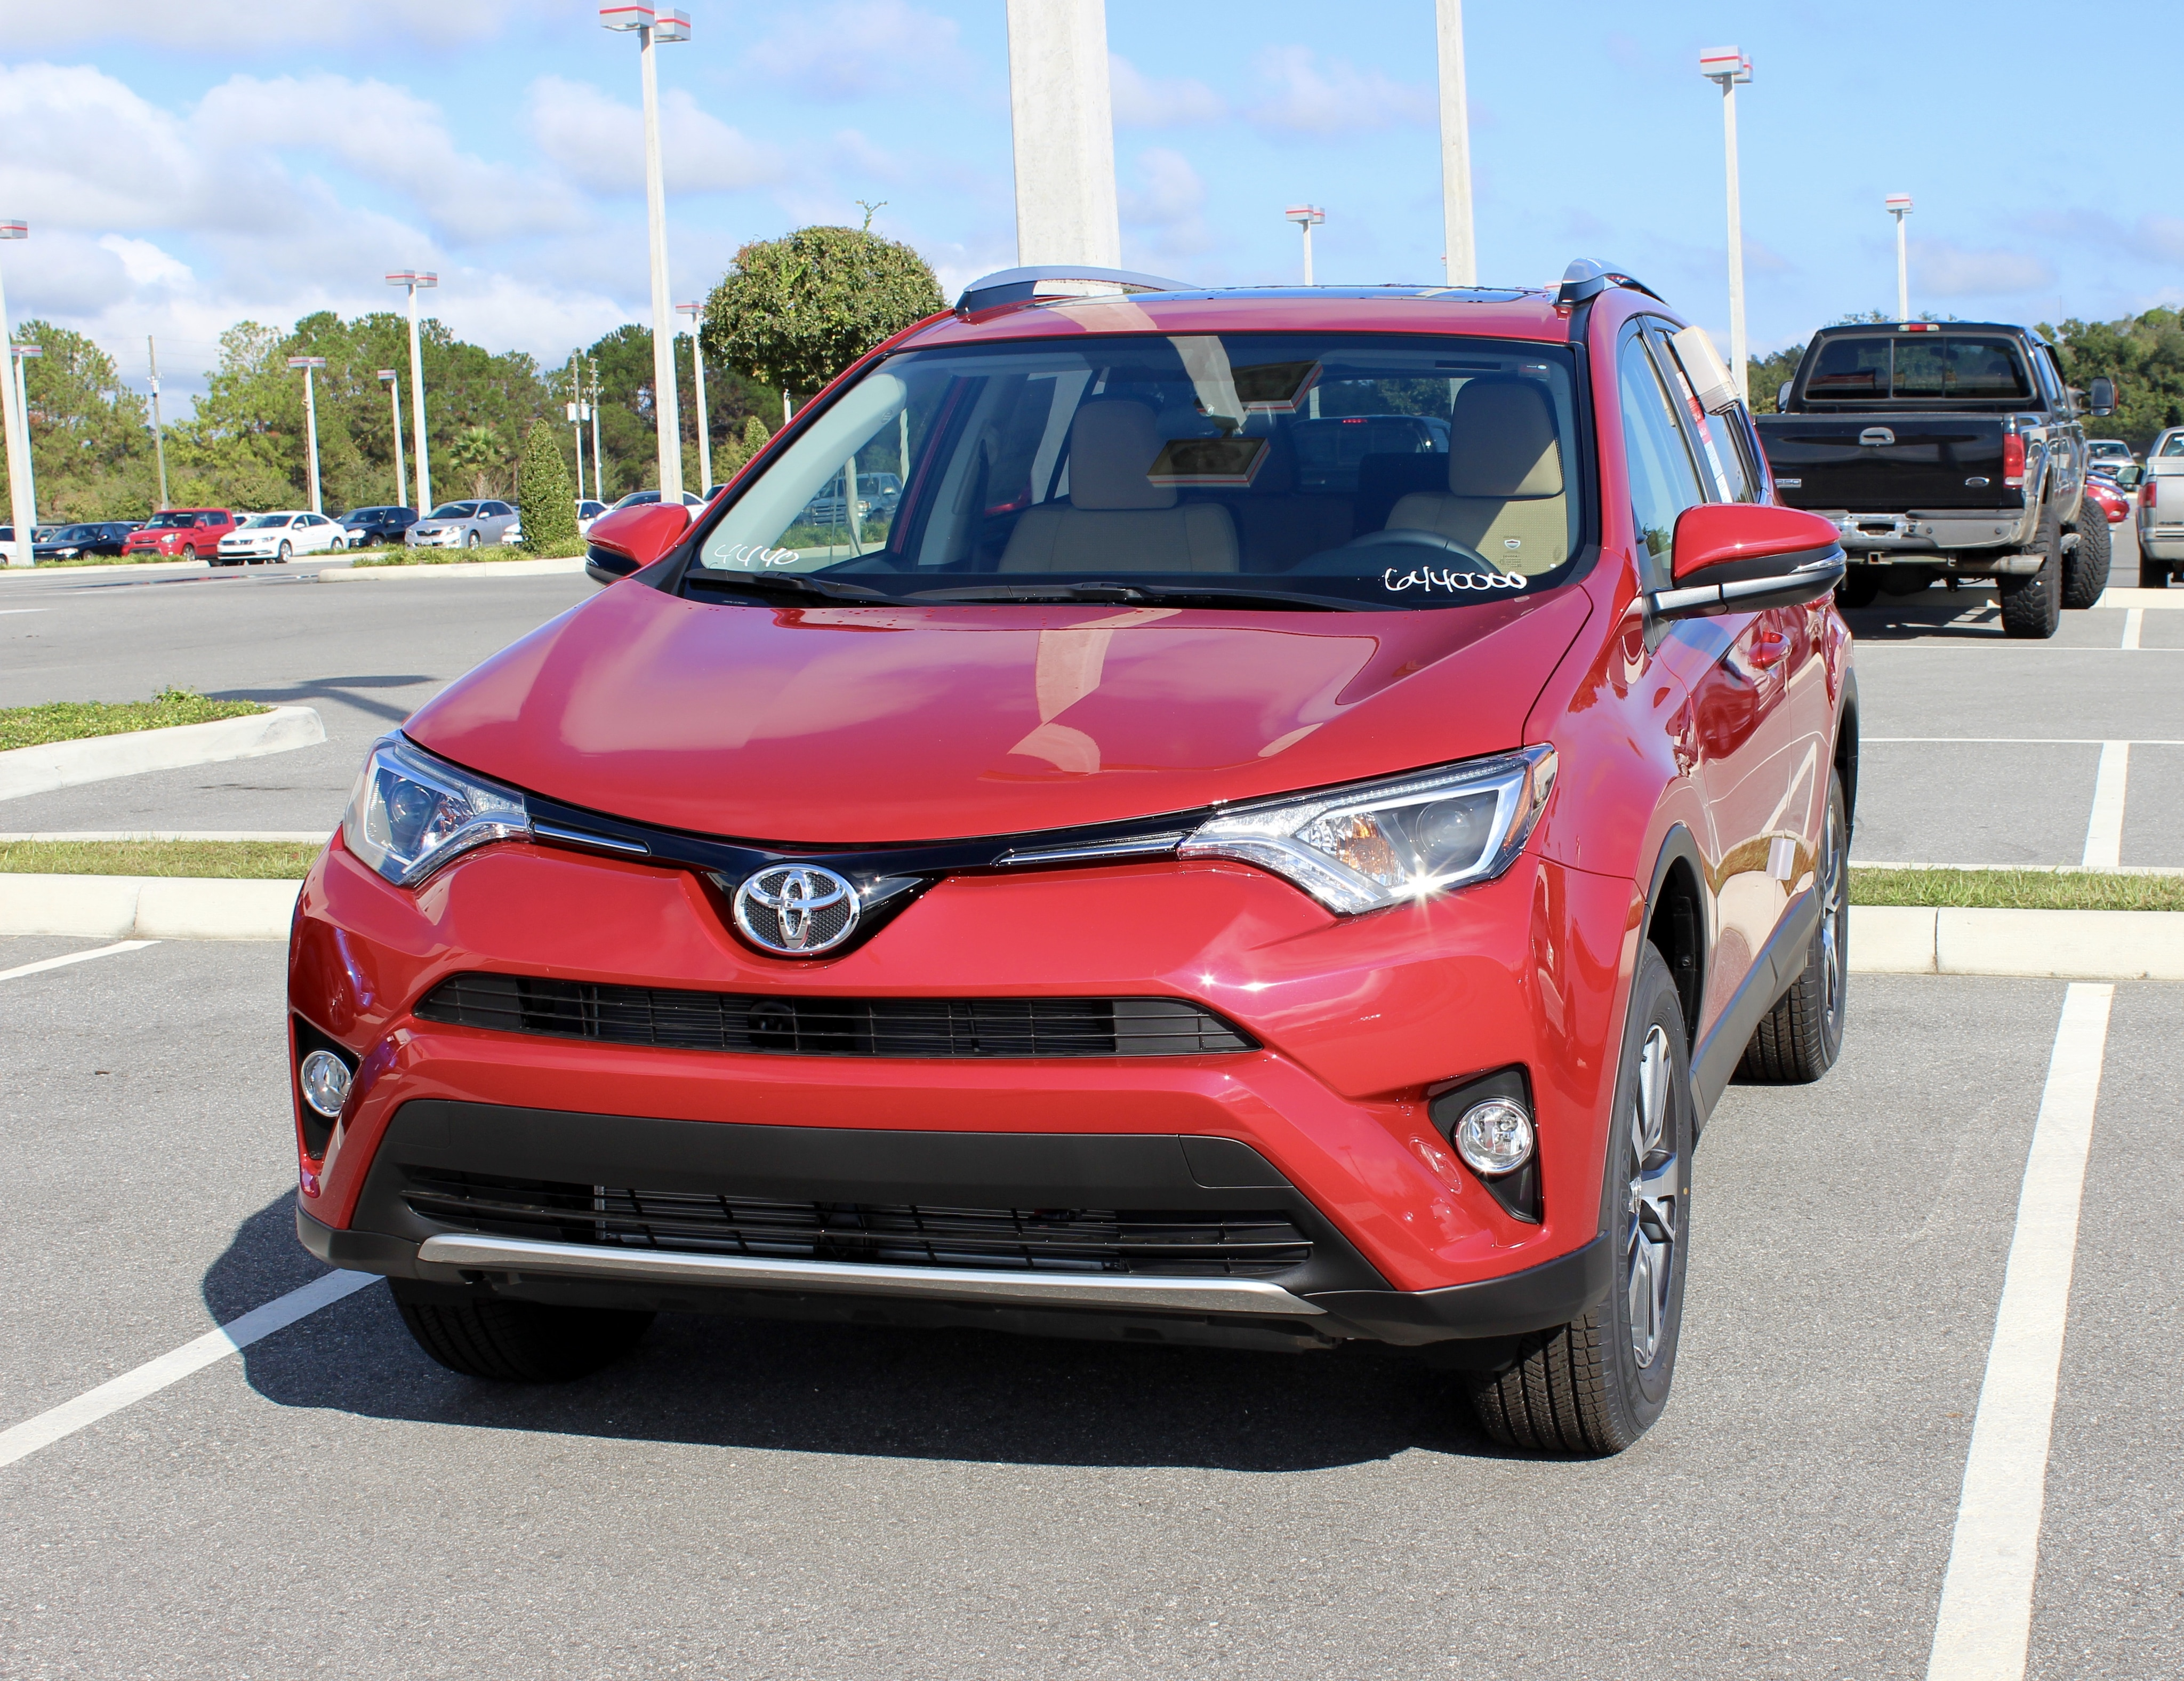 New Toyota SUV near Charlotte